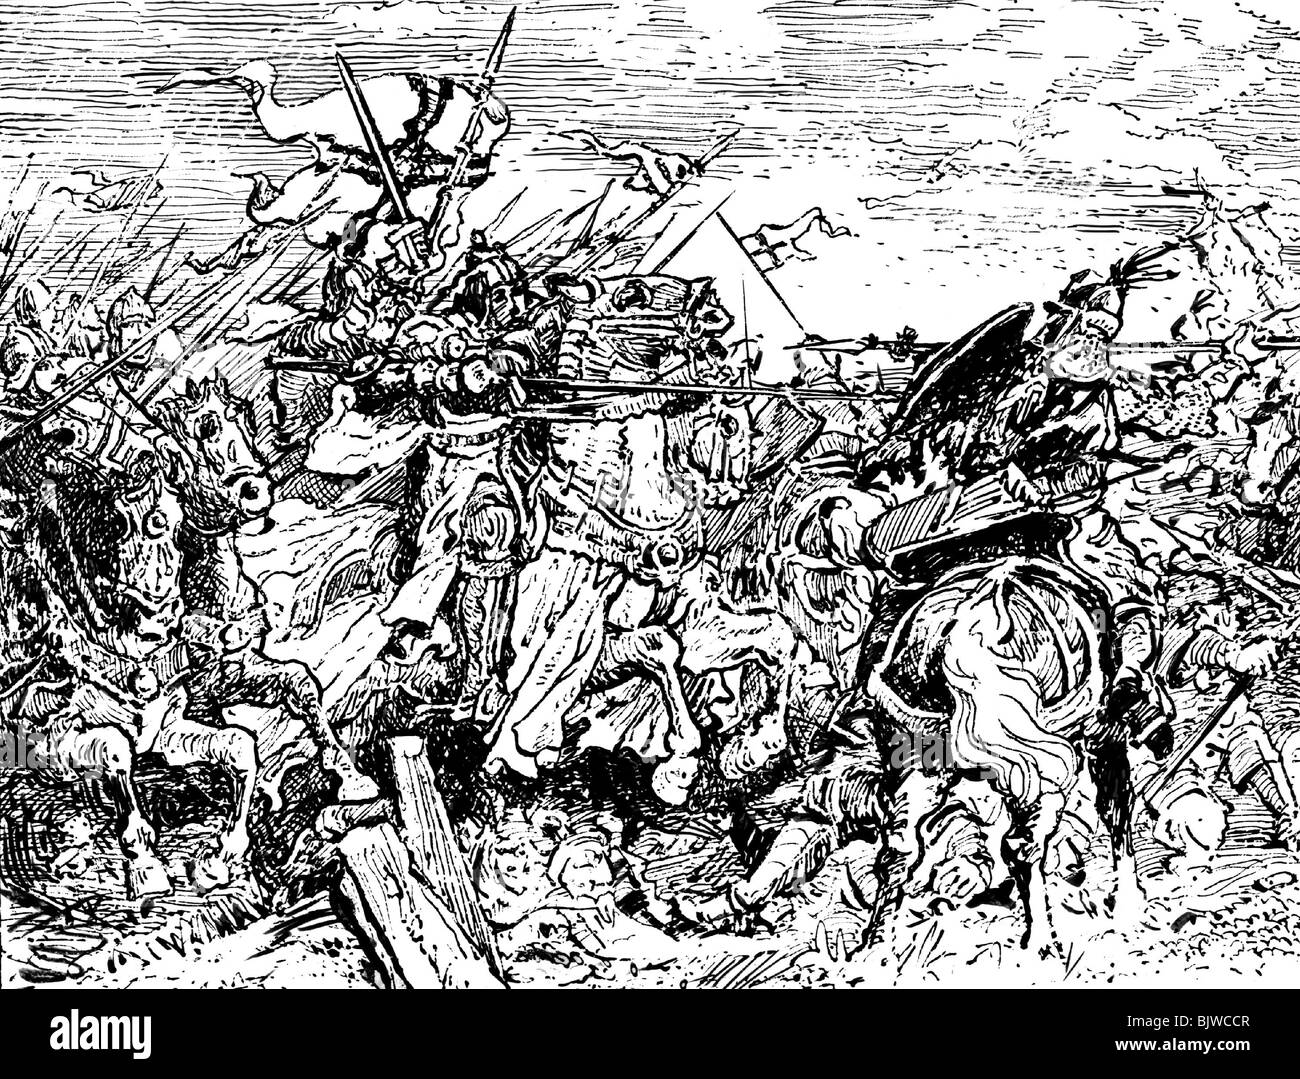 Events, Polishlithuanian War Of The Teutonic Order 1409  1410, Battle Of